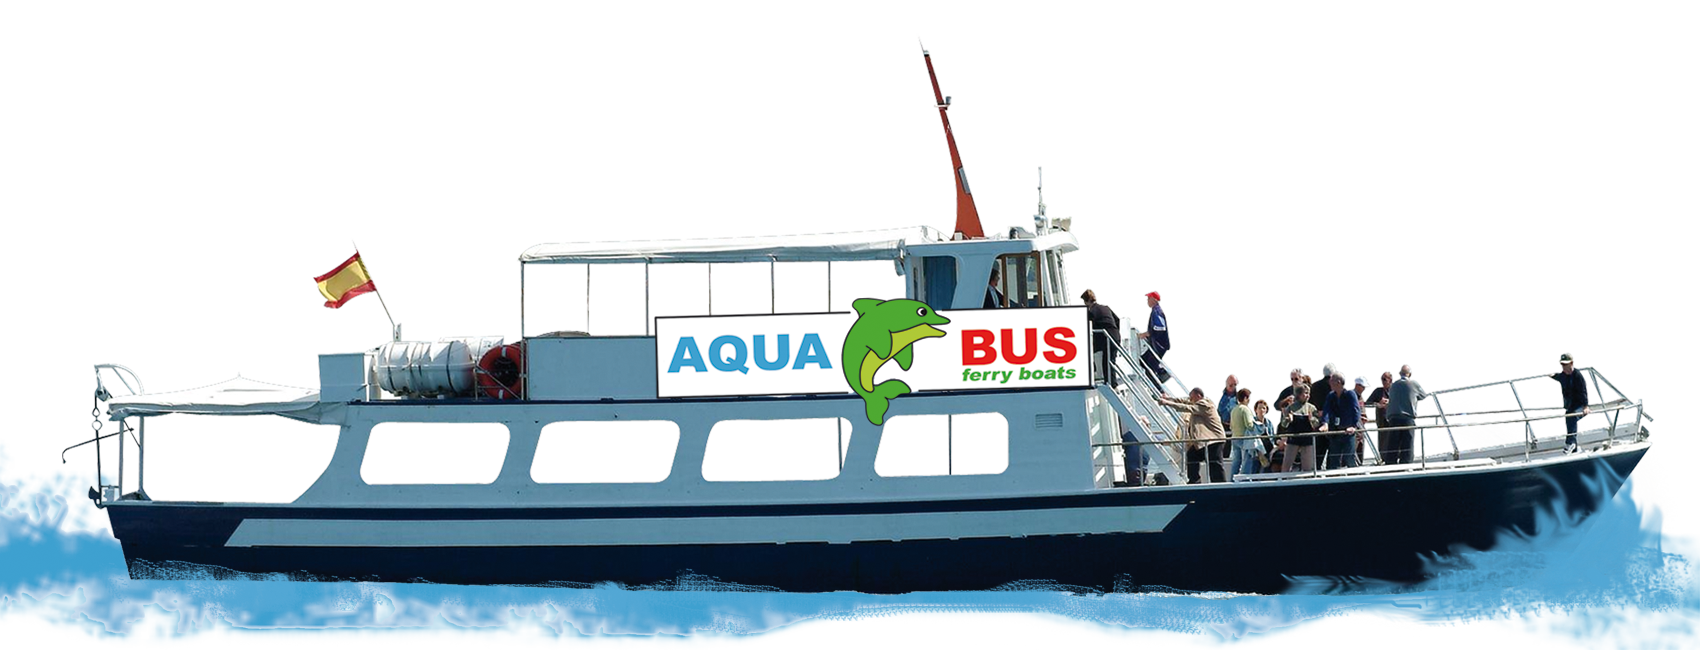 Png boat transparent images. Wheel clipart ferry